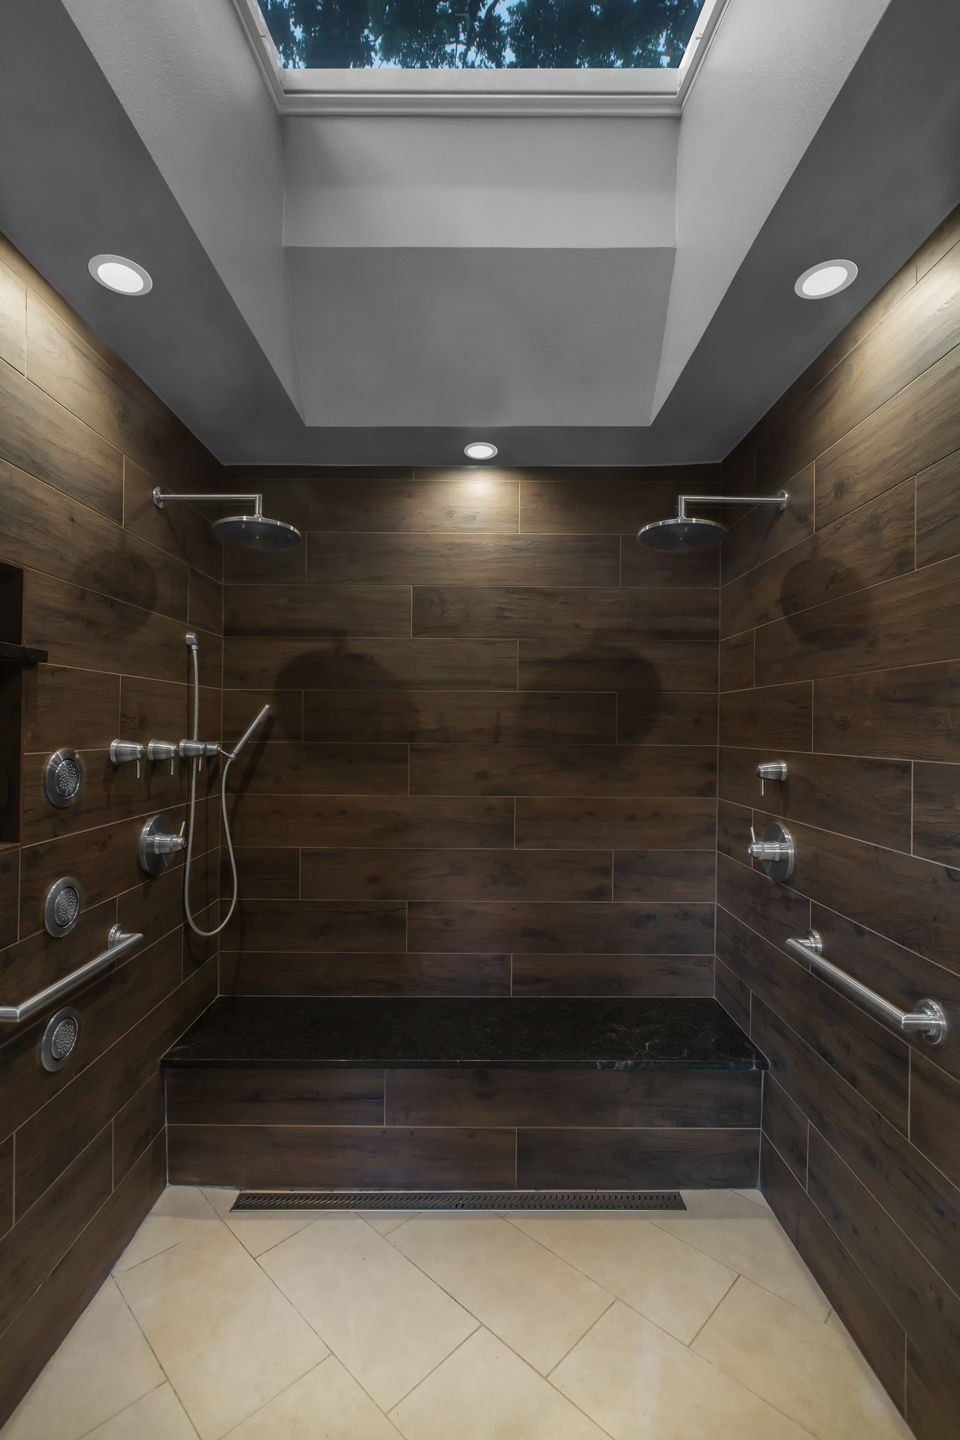 Walk In Shower With Wood Look Tile Double Rain Shower Heads Body